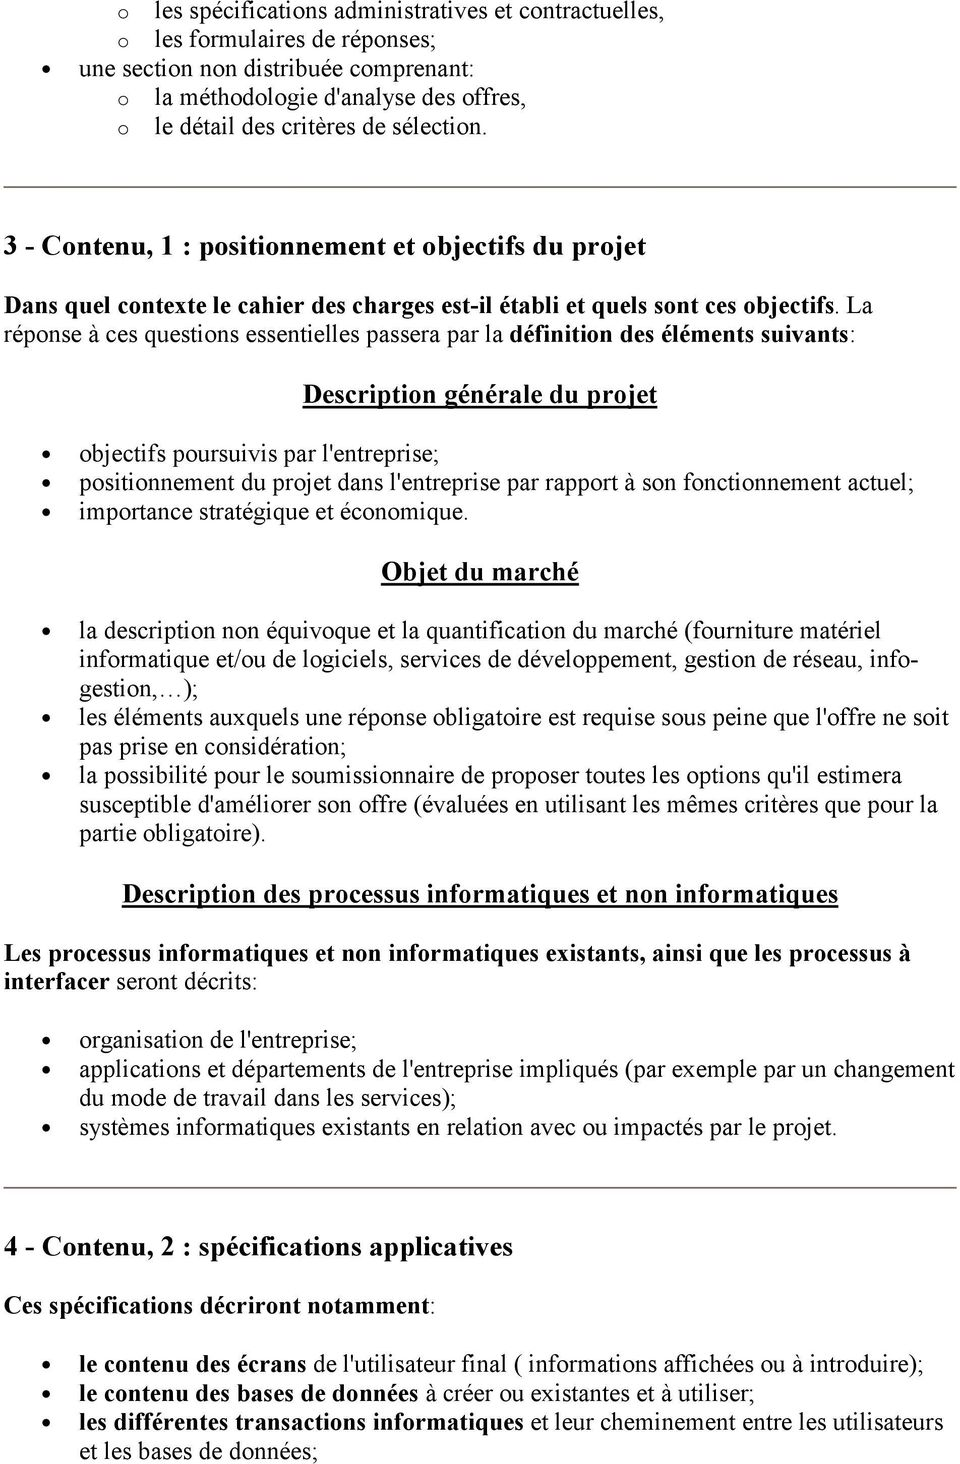 cahier des charges mariage pdf